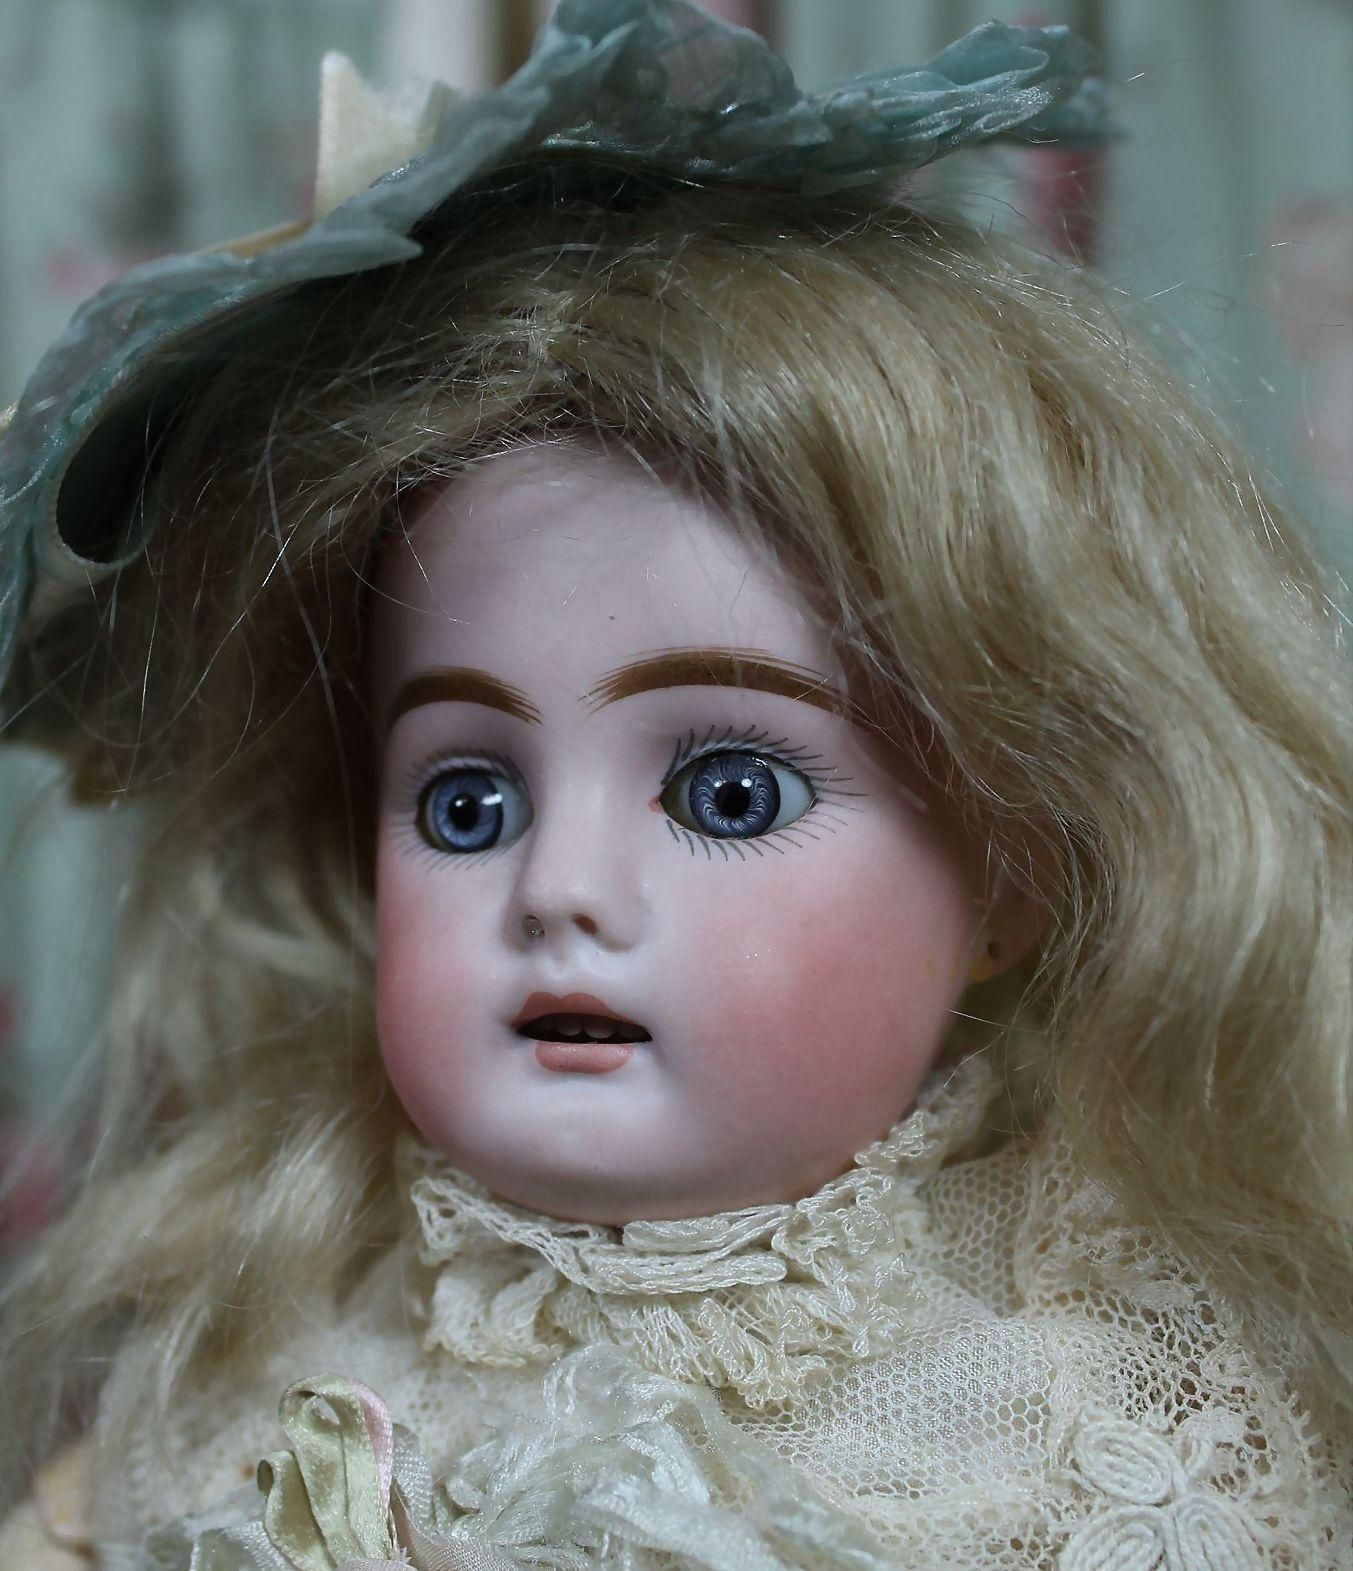 This gem of a cabinet size doll is too adorable for words and she comes with her antique trunk filled with antique clothes and rare antique fur